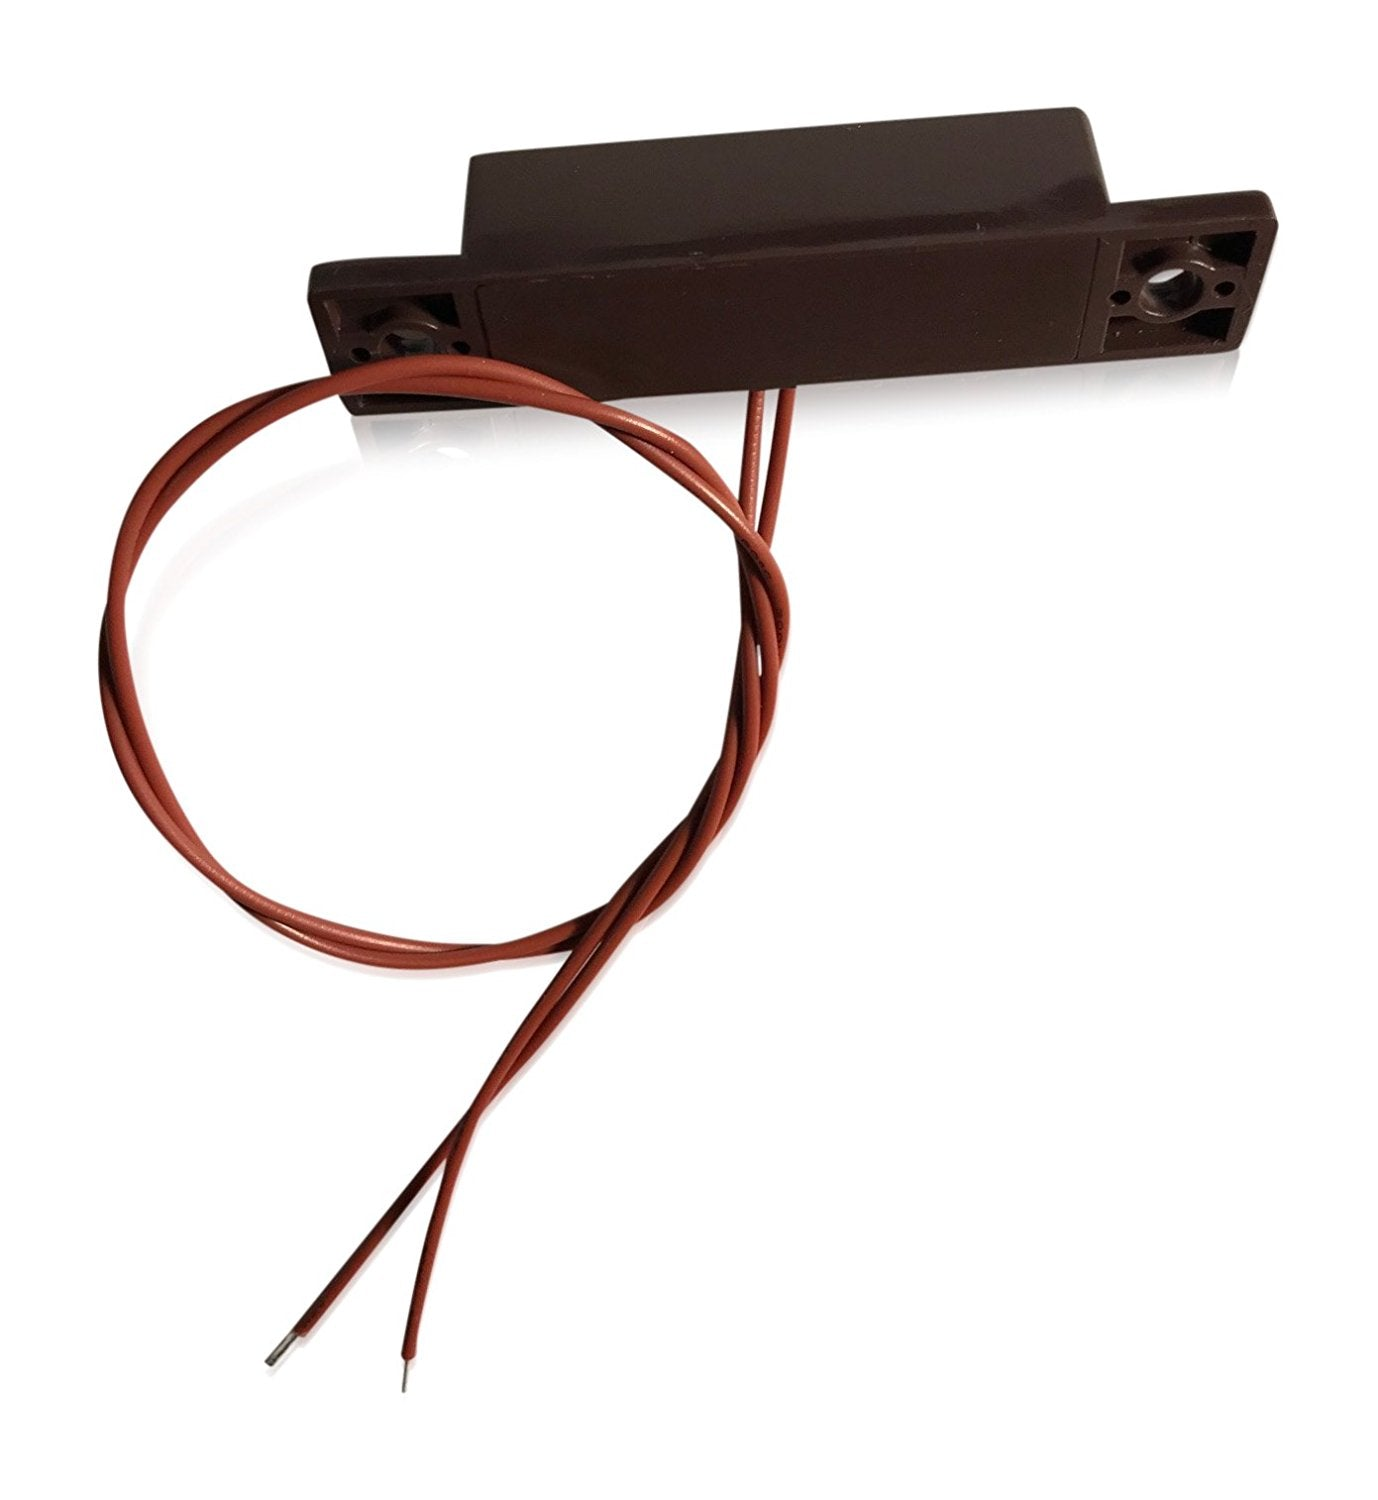 "1 pcs Brown Wired Door Contacts Surface Mount NC Security Alarm Door Window Sensors.These ¾"" Door Contact Position switches (DCS) Work with All Access Control and Burglar Alarm Systems"